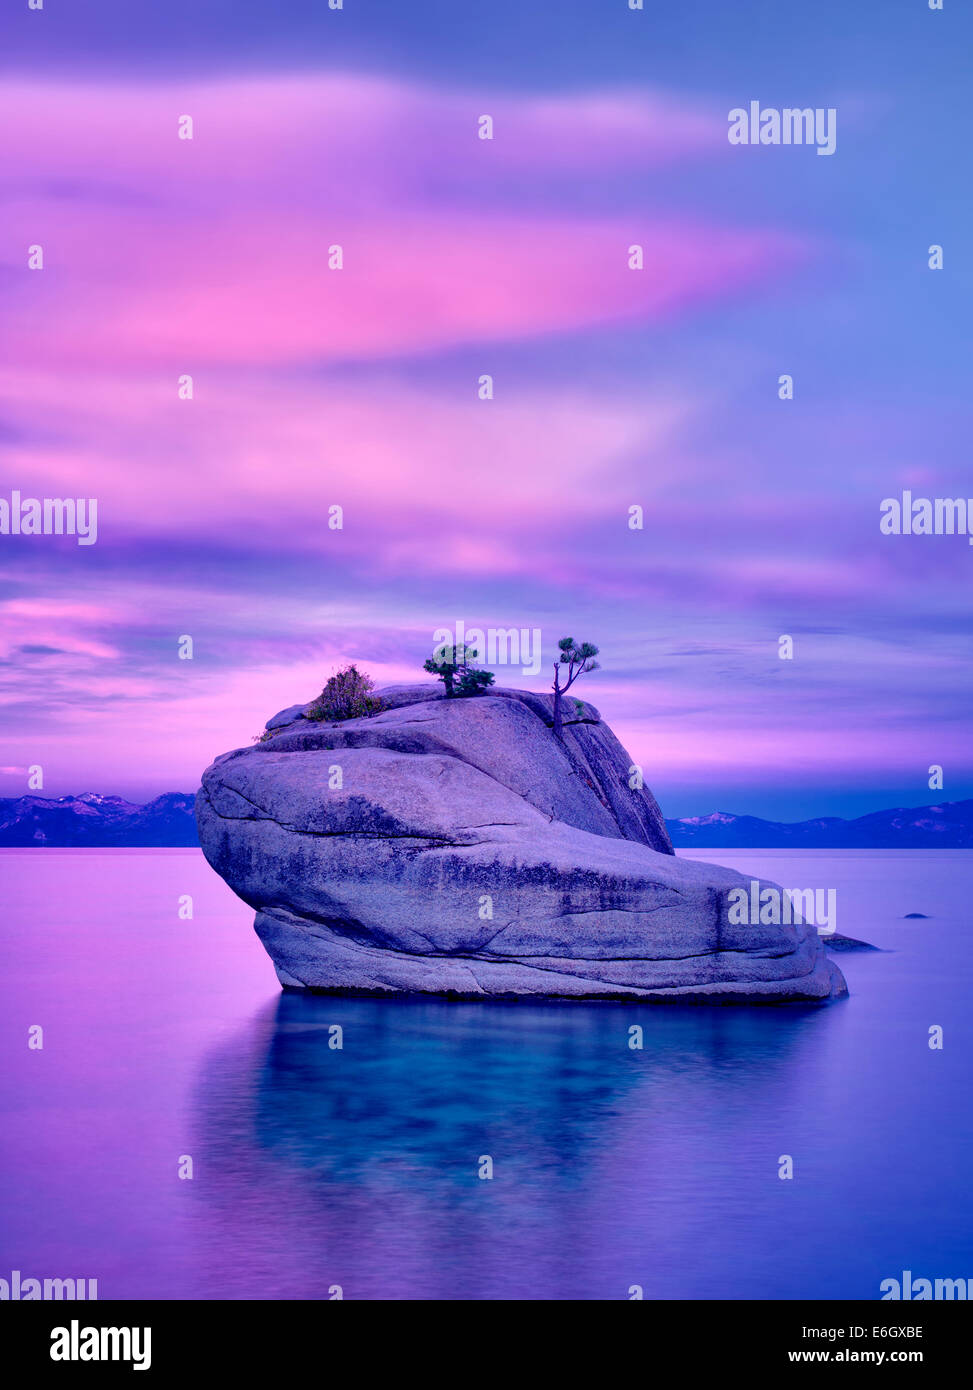 Bonsai tree on boulder with sunrise. Lake Tahoe, Nevada - Stock Image